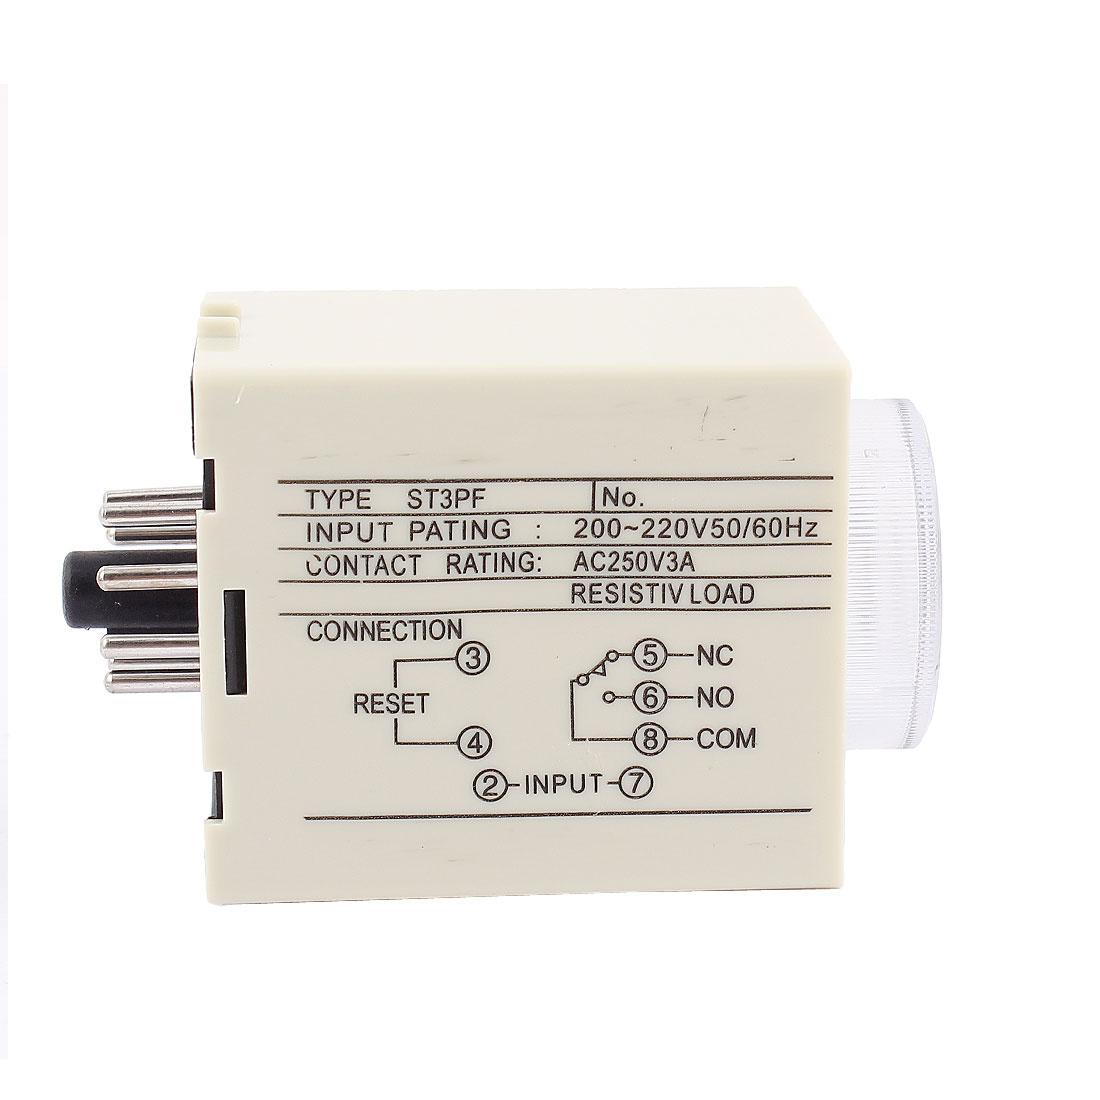 AC 250V 3A 0-60 Second Knob Control Electronic Timer Delay Relay ST3PF